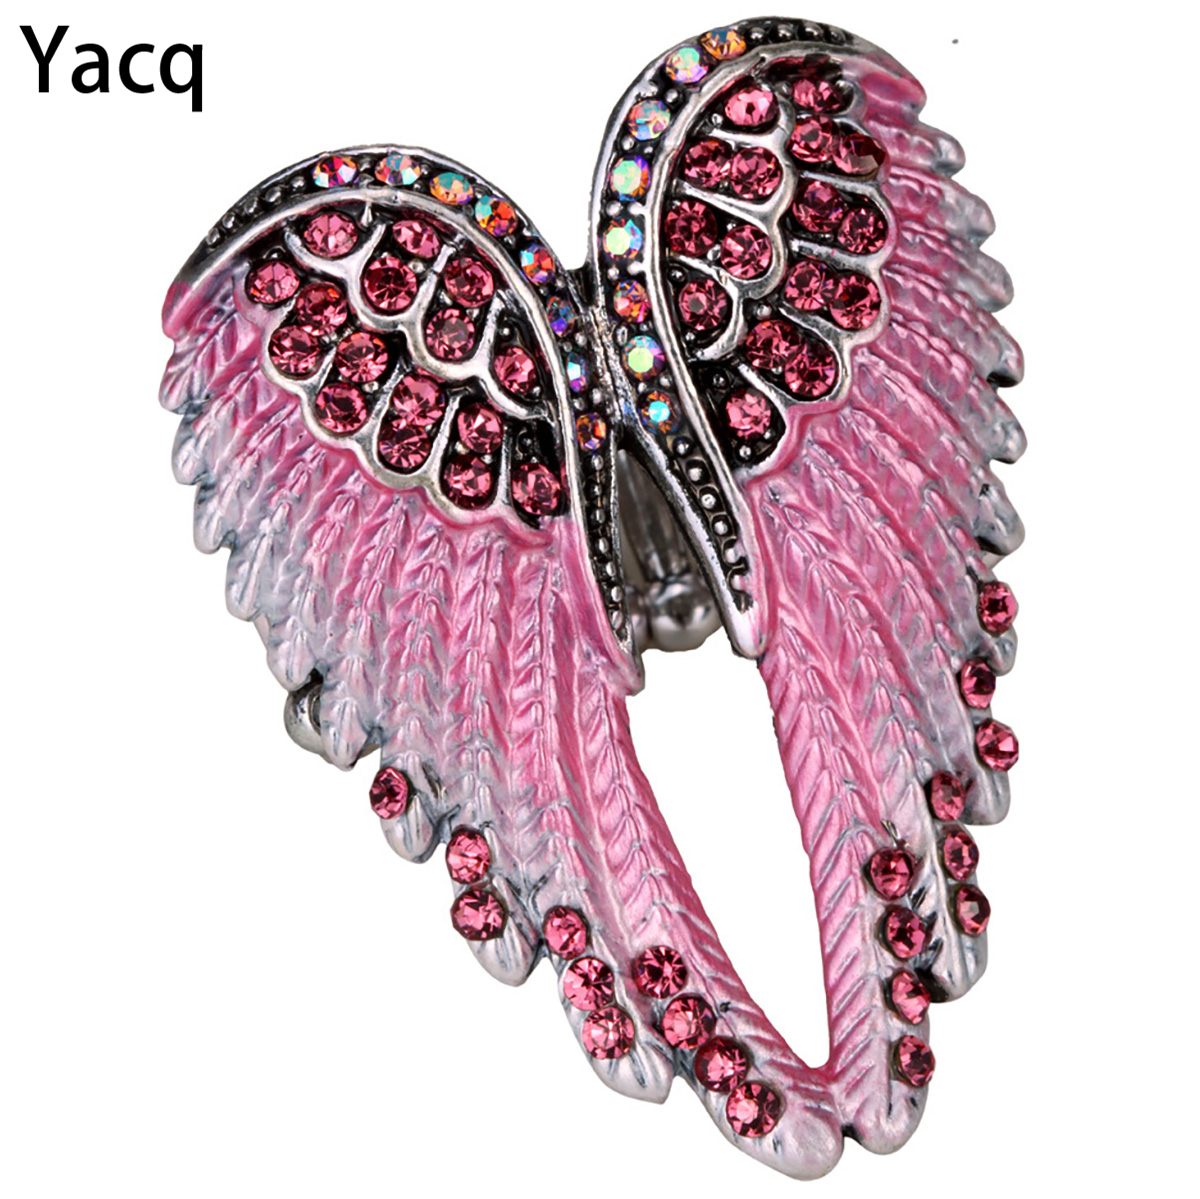 YACQ Angel Wings Stretch Ring Šal zaponko Ženske Kolesar Bling Crystal Nakit Darila Njeno Pozlačeno Dropshipping